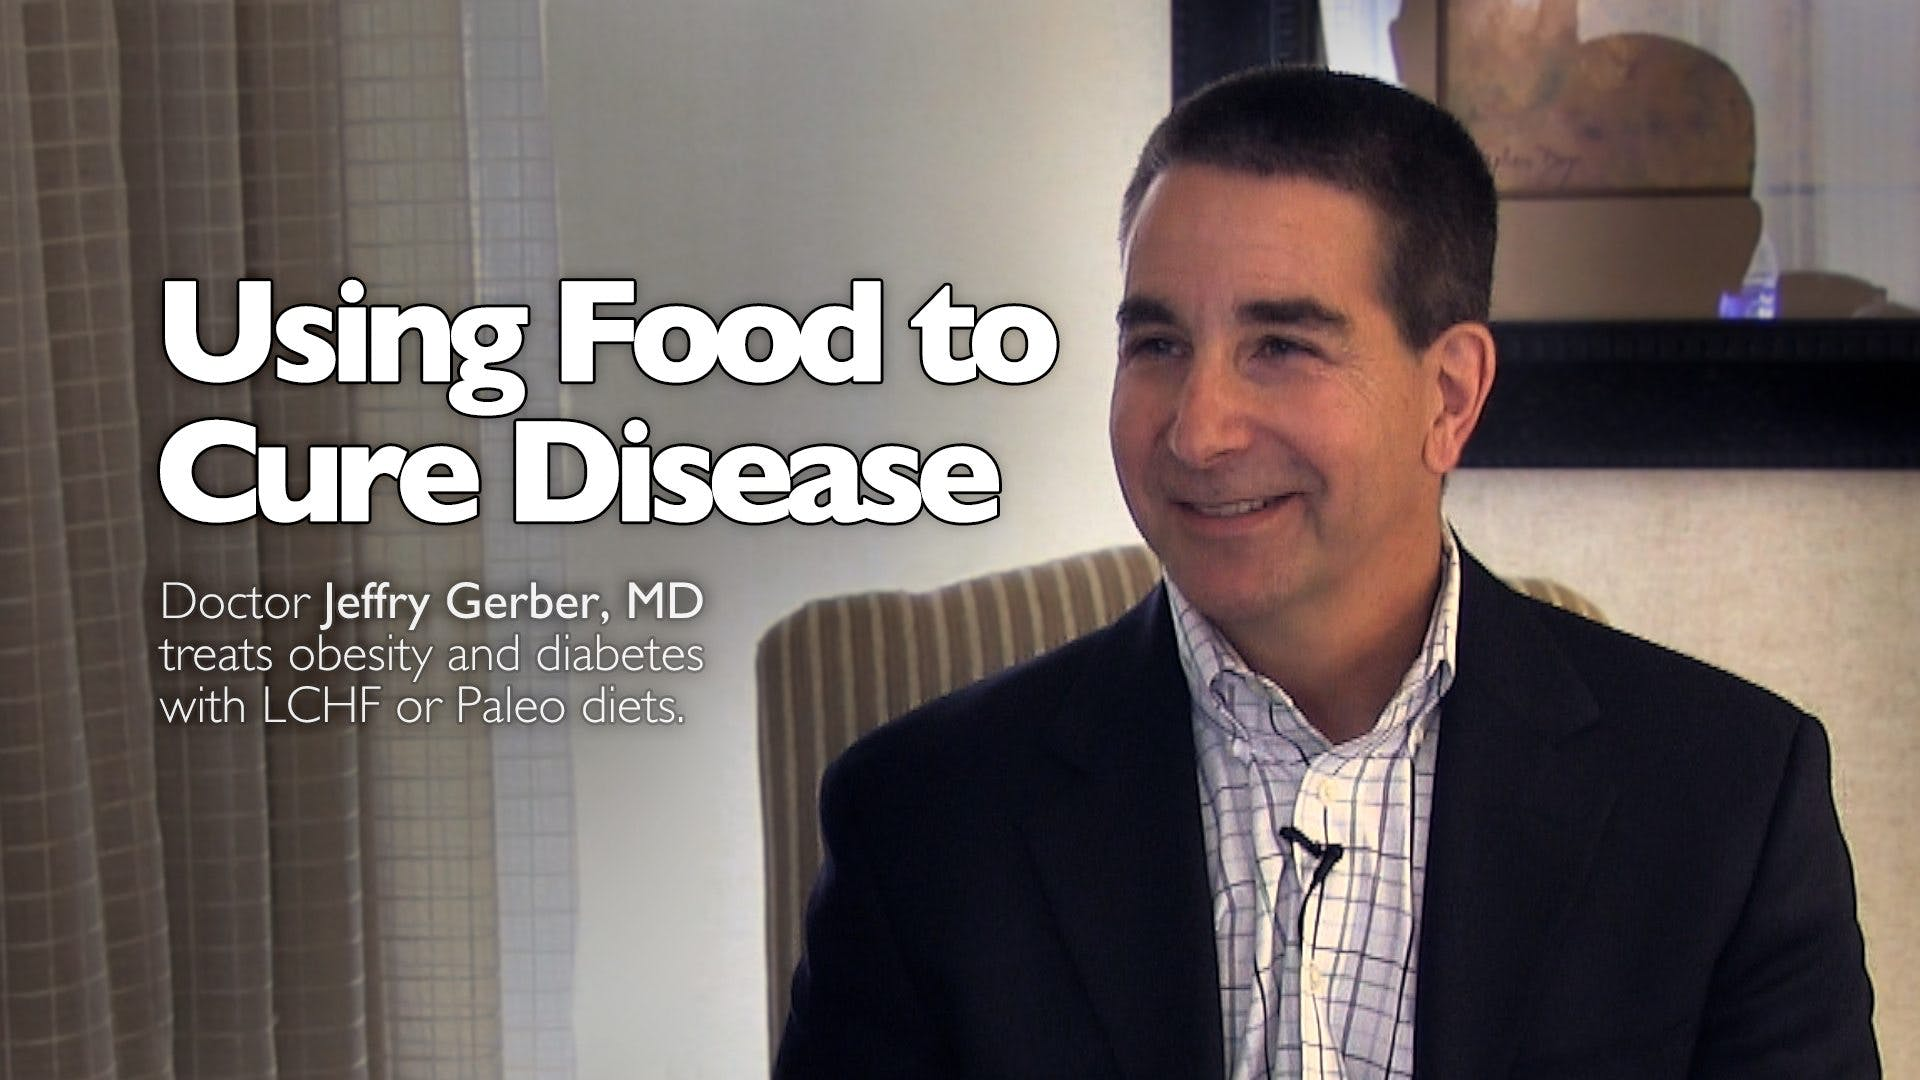 Using food to cure disease